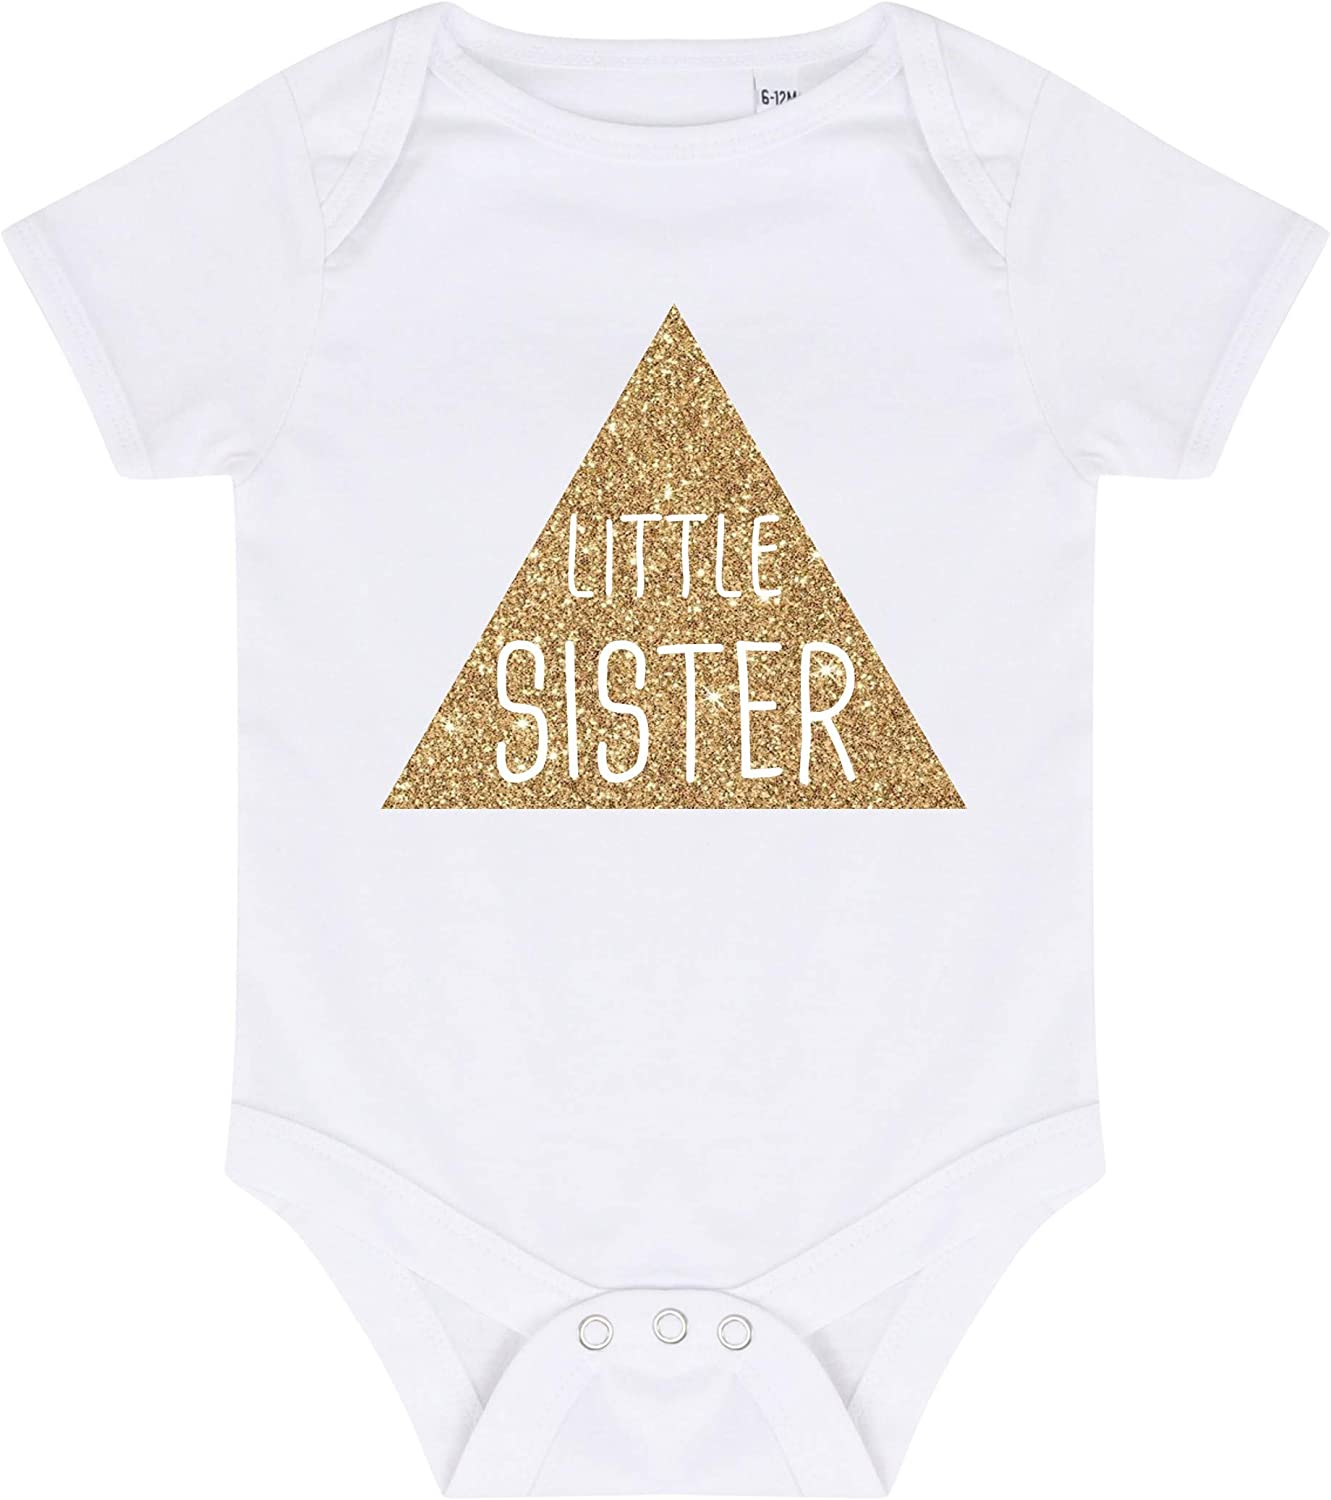 Direct 23 Ltd Gold Glitter Triangle Big /& Little Sister T-Shirts /& Bodysuits